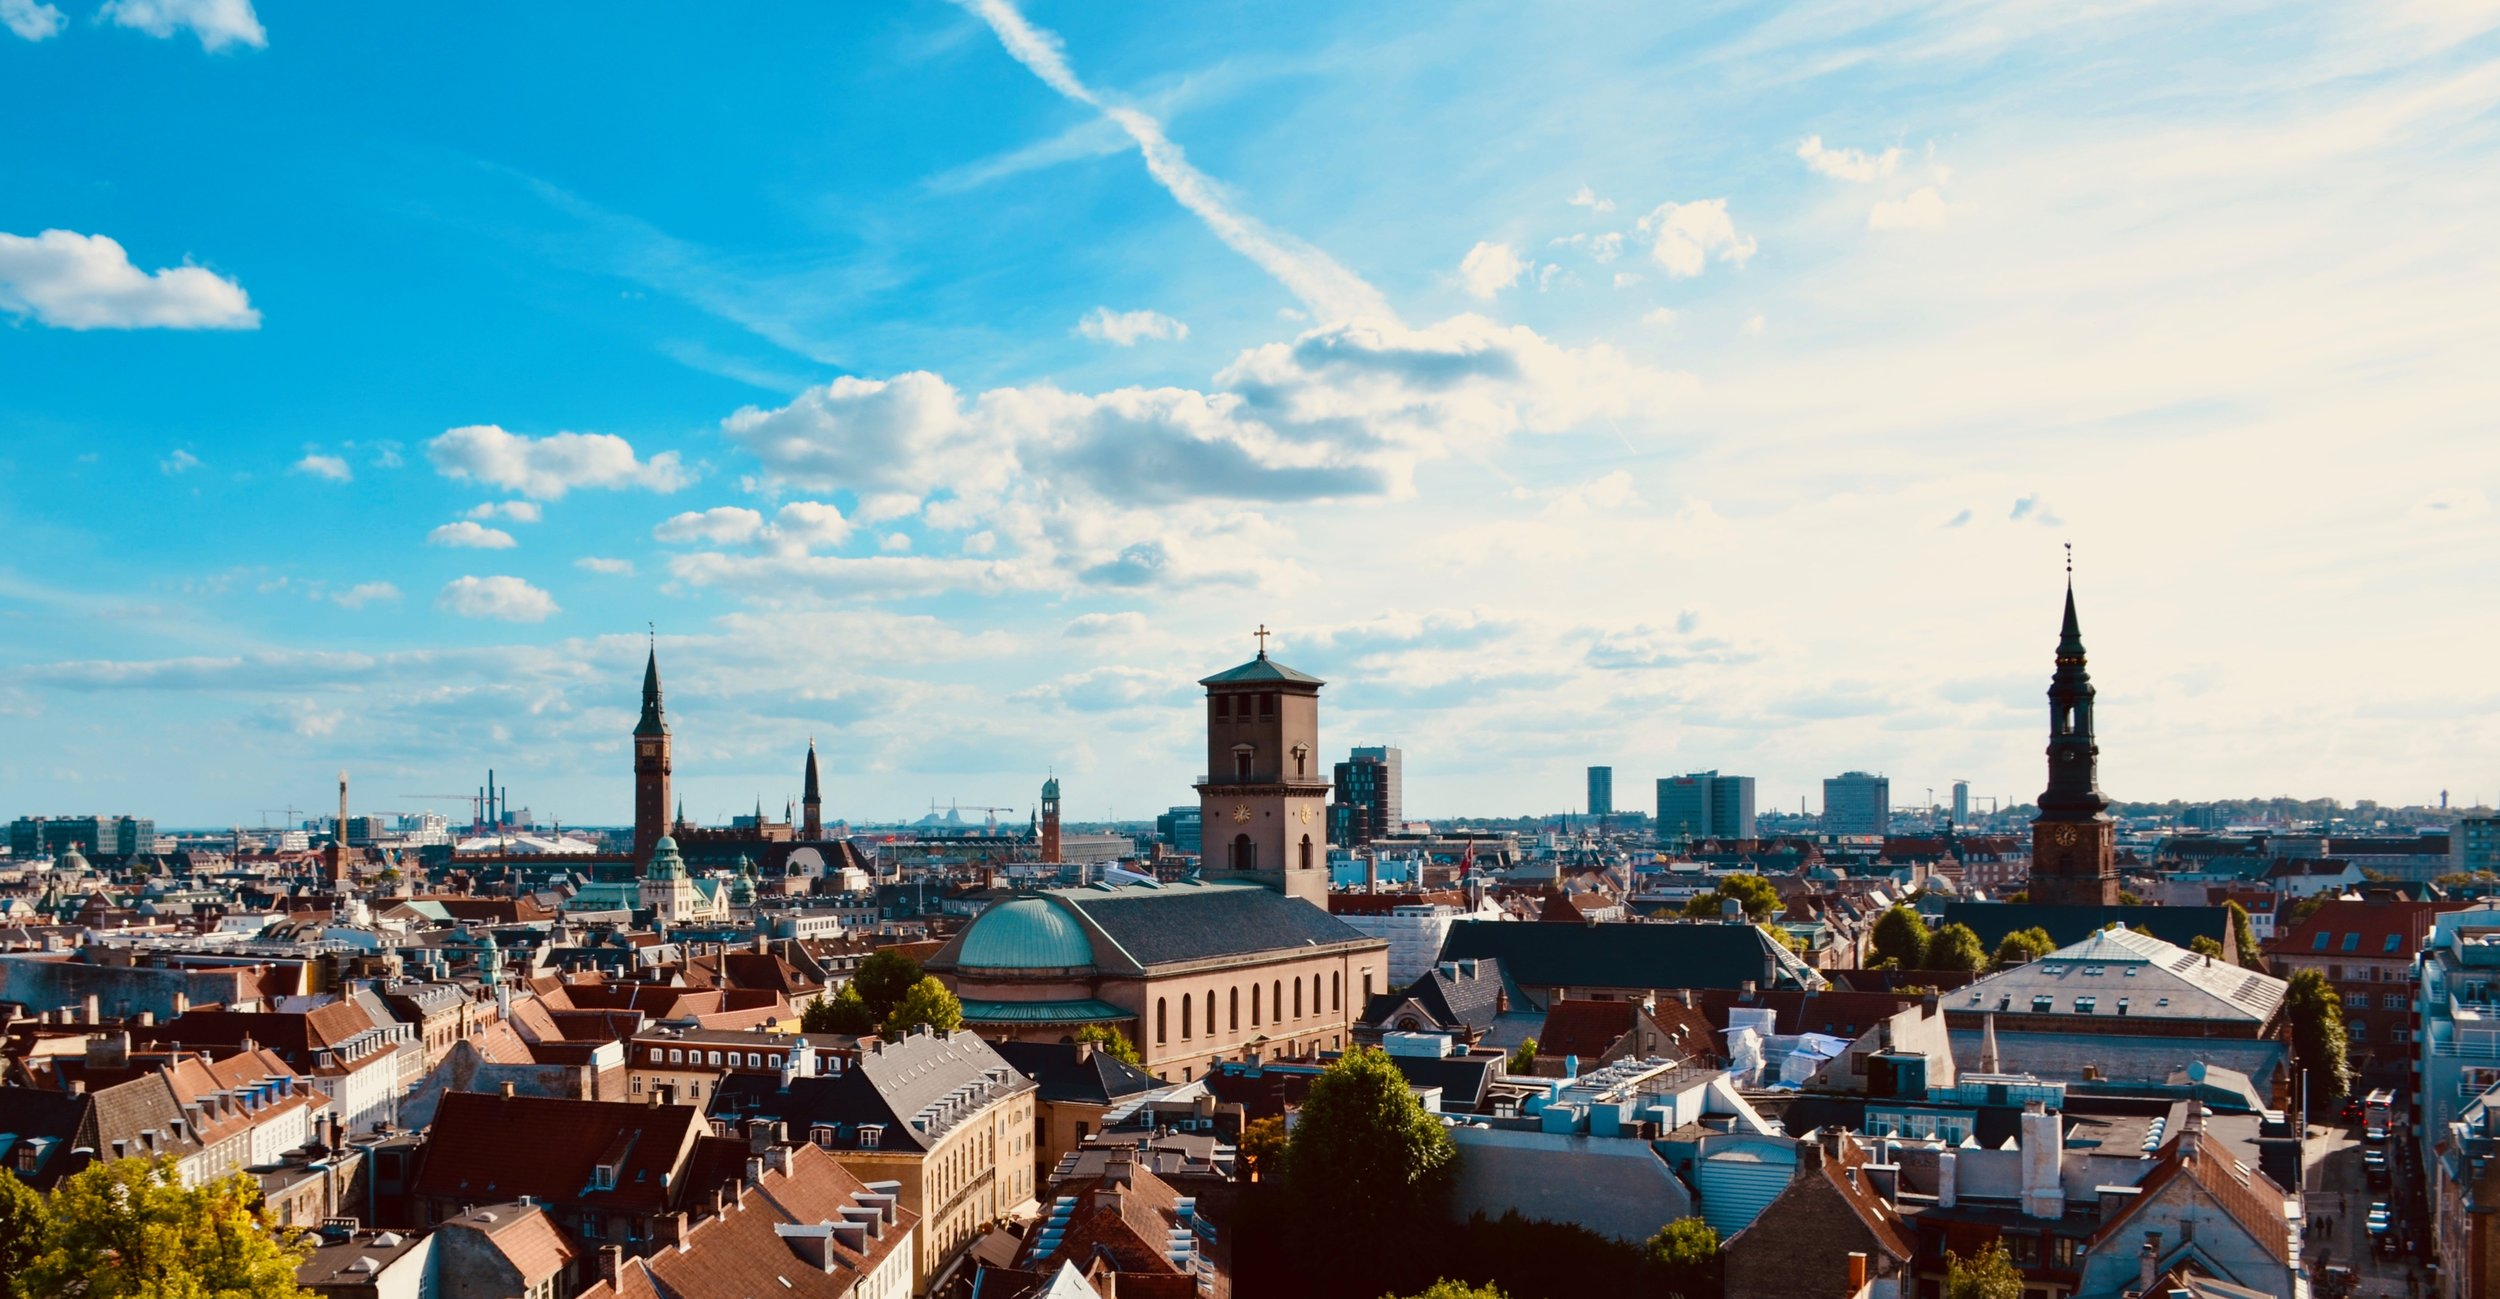 A view over Copenhagen, as we end our trip atop the tower at Trinitatis Kirke.